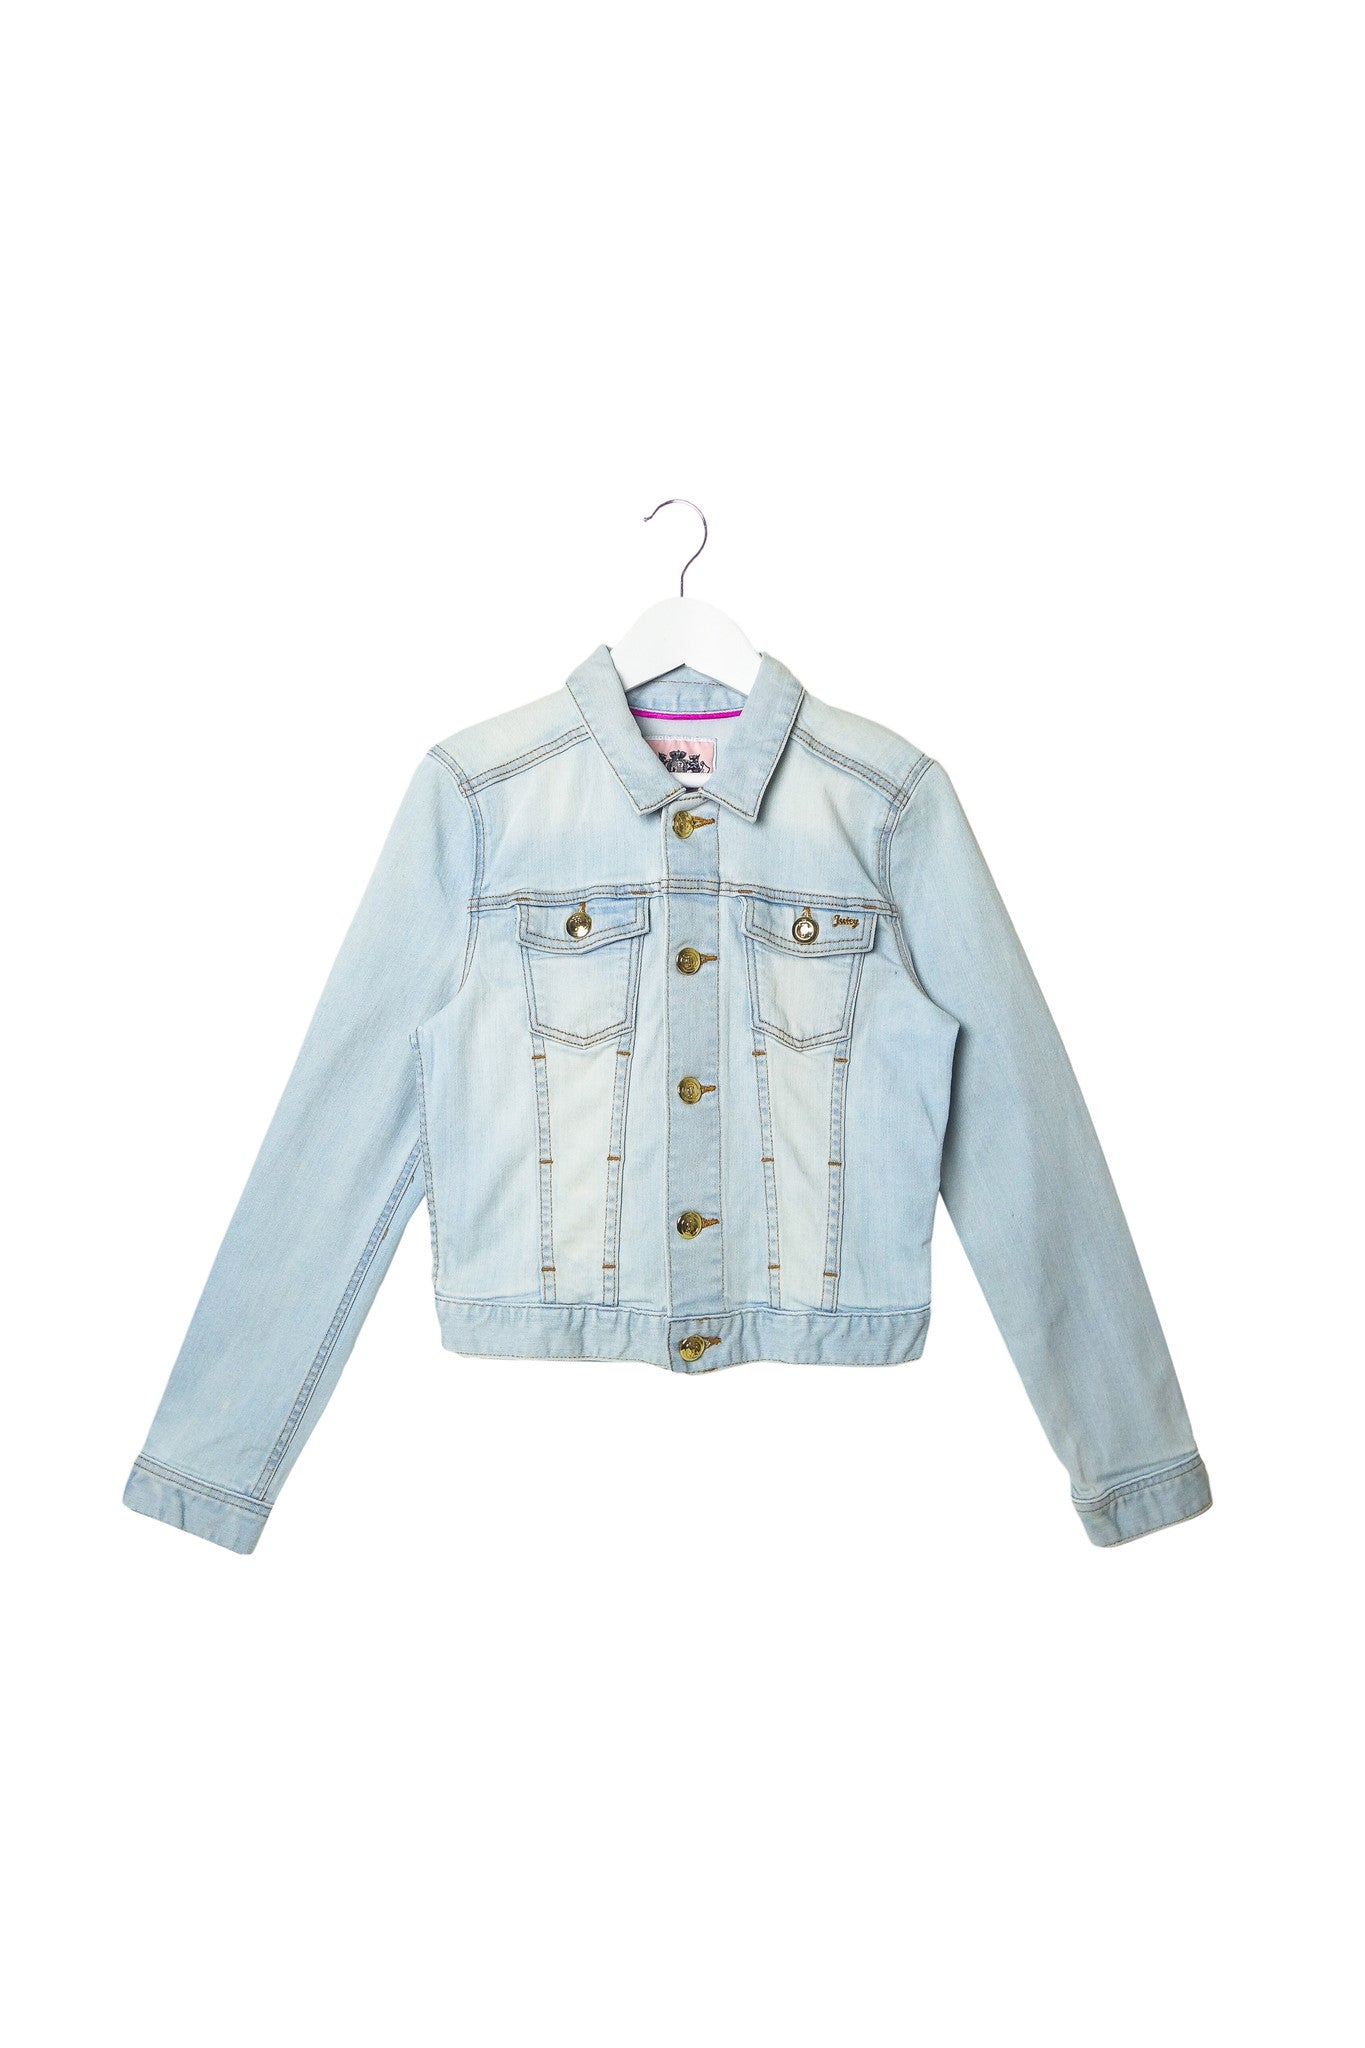 10002926 Juicy Couture Kids~Jacket 8 at Retykle